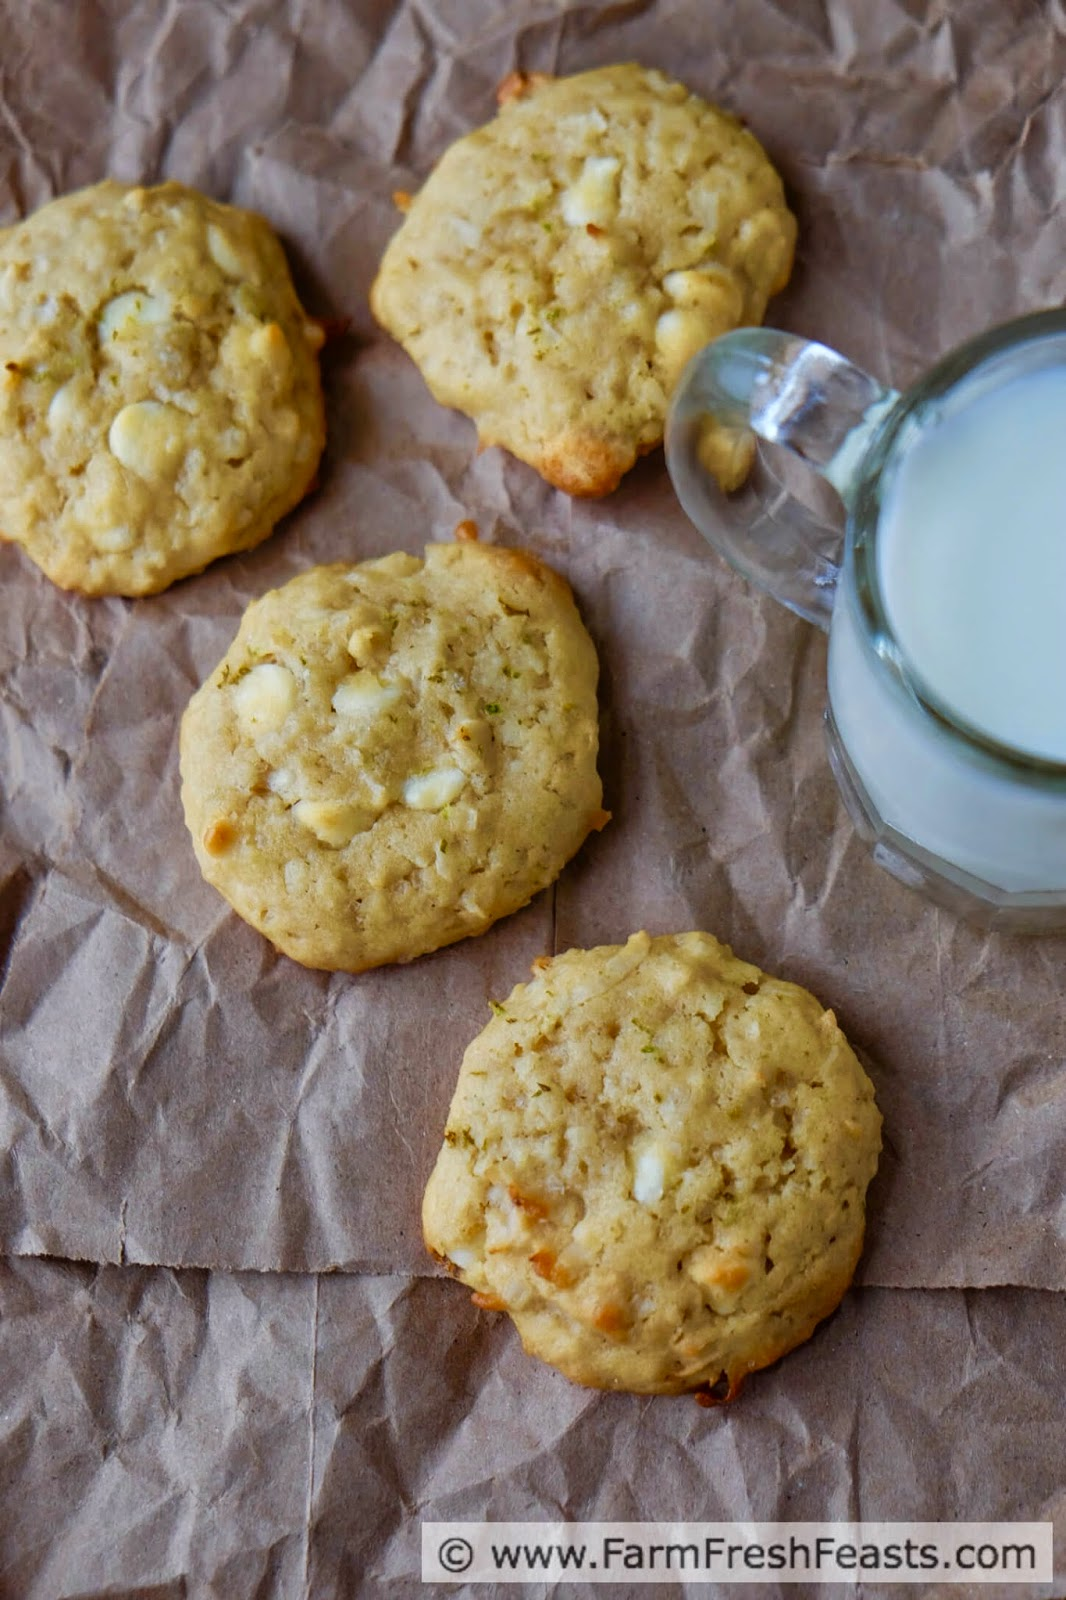 http://www.farmfreshfeasts.com/2015/04/coconut-lime-cookies.html